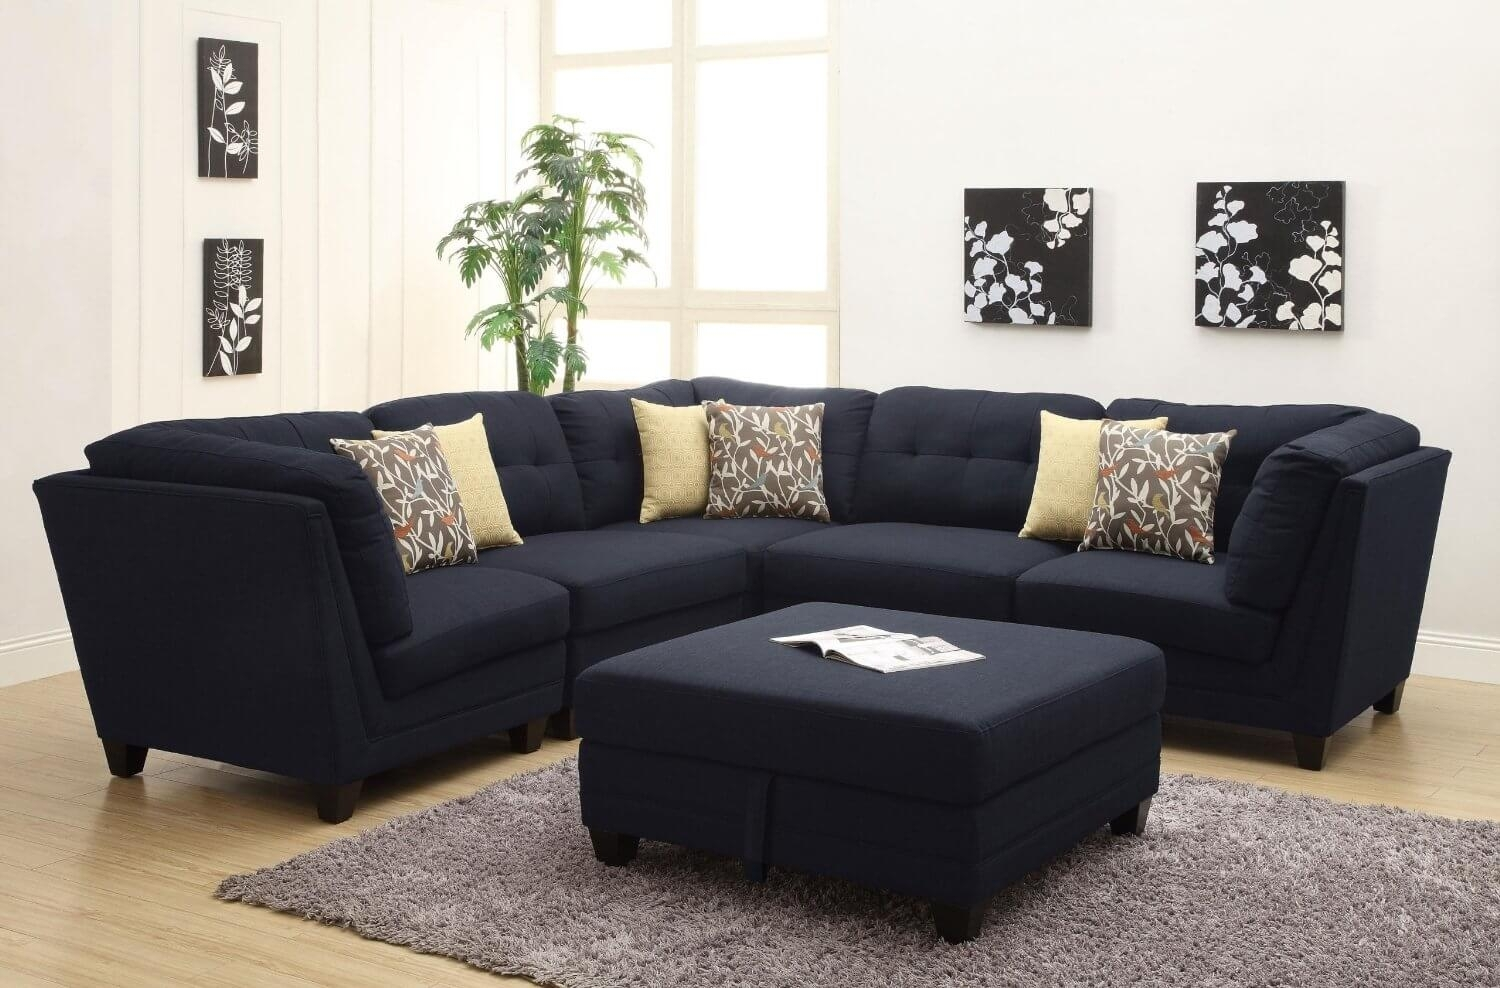 100 Awesome Sectional Sofas Under $1,000 (2018) With Sectional Sofas Under (View 7 of 10)